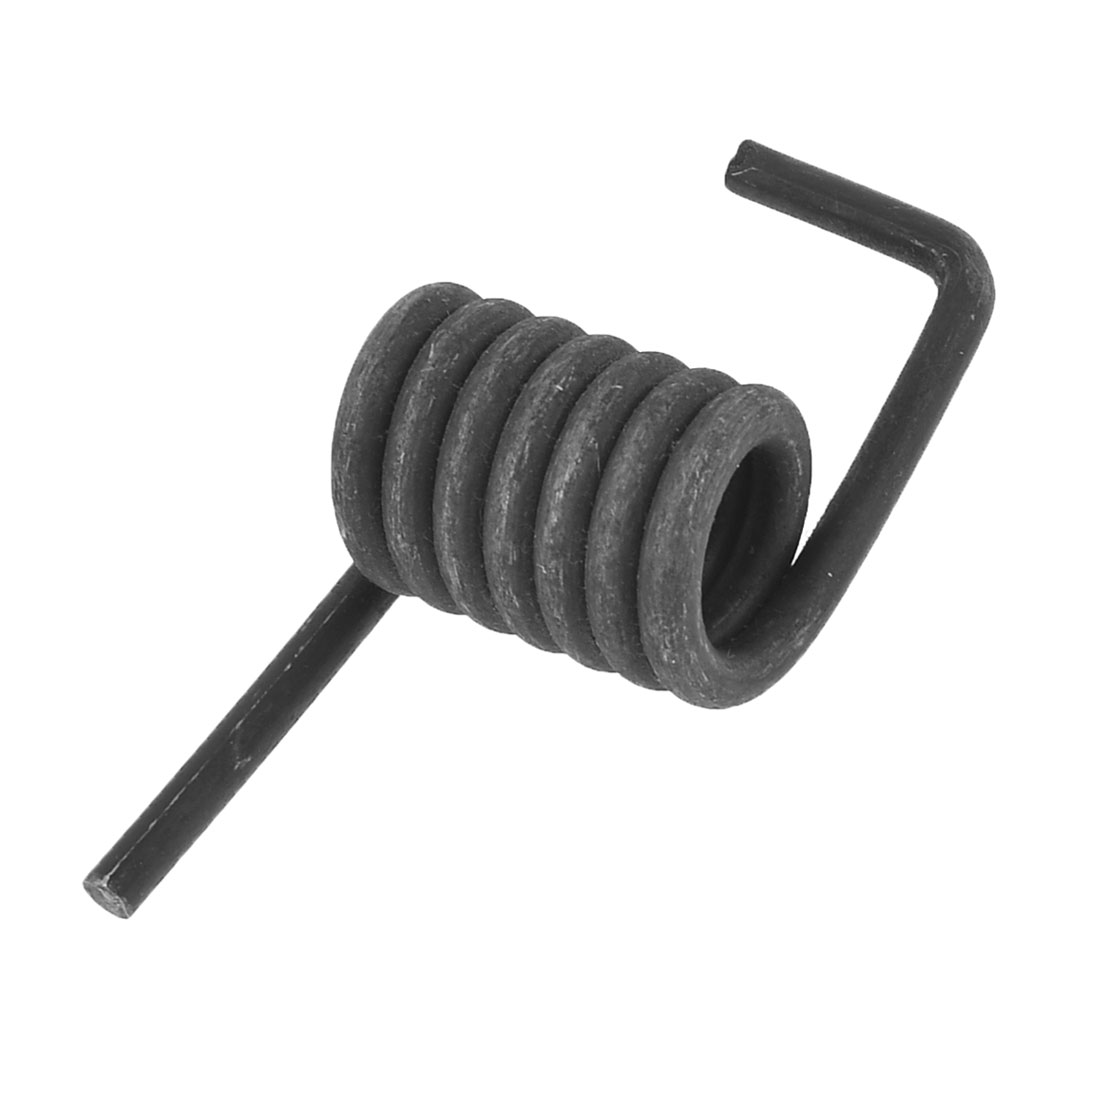 Black Metal Coil Dia 2.9cm Cutting Off Machine Spare Part Torsion Spring